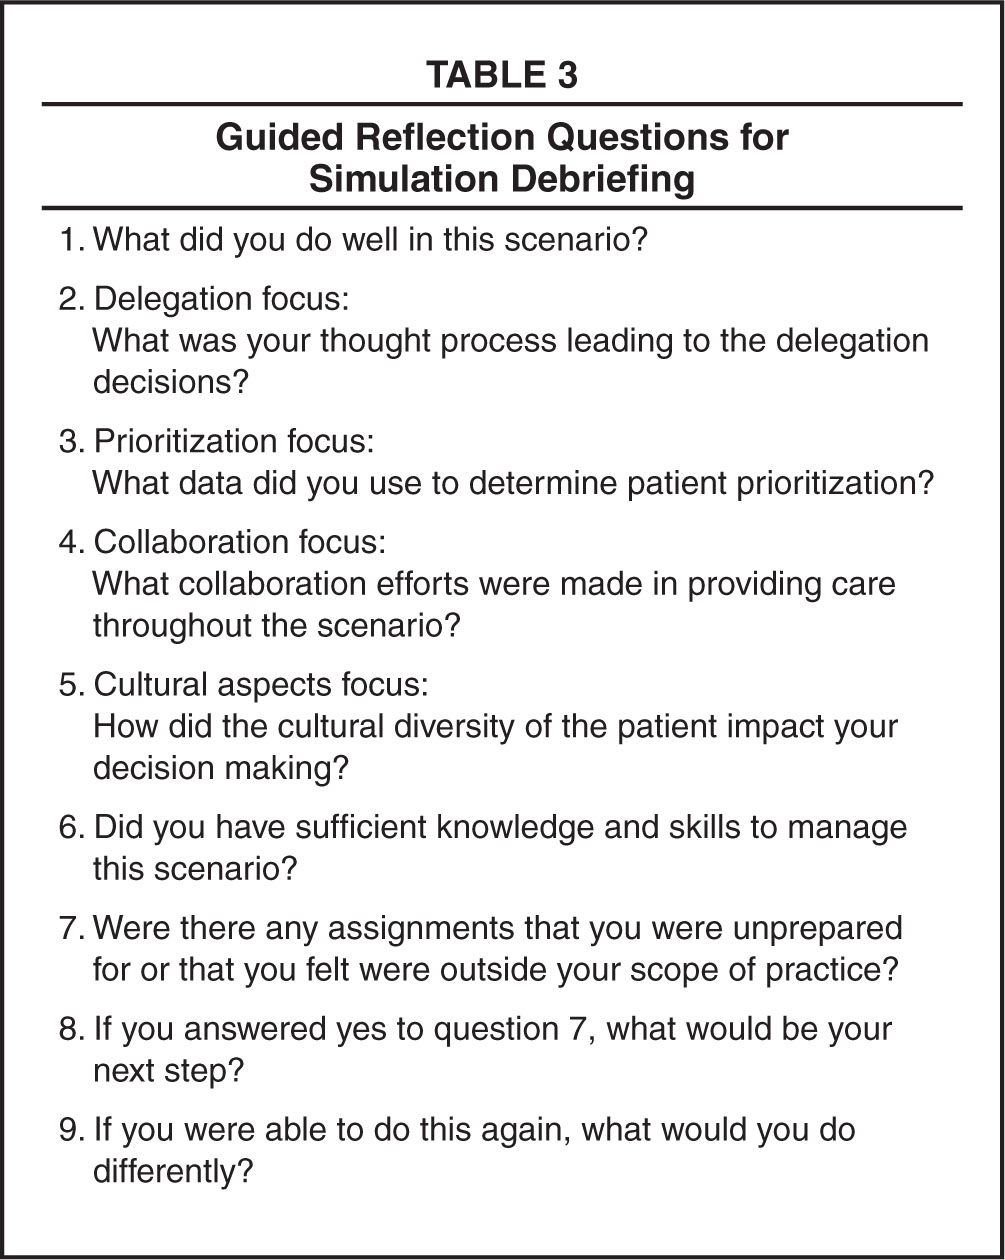 simulation reflective journal This article is a reflection journal after a simulation for cardiac arrest reflection learning has been described as a process of critically reviewing experience from practice so that it may be used to inform and change future practice in a positive way (bulman, 2008).